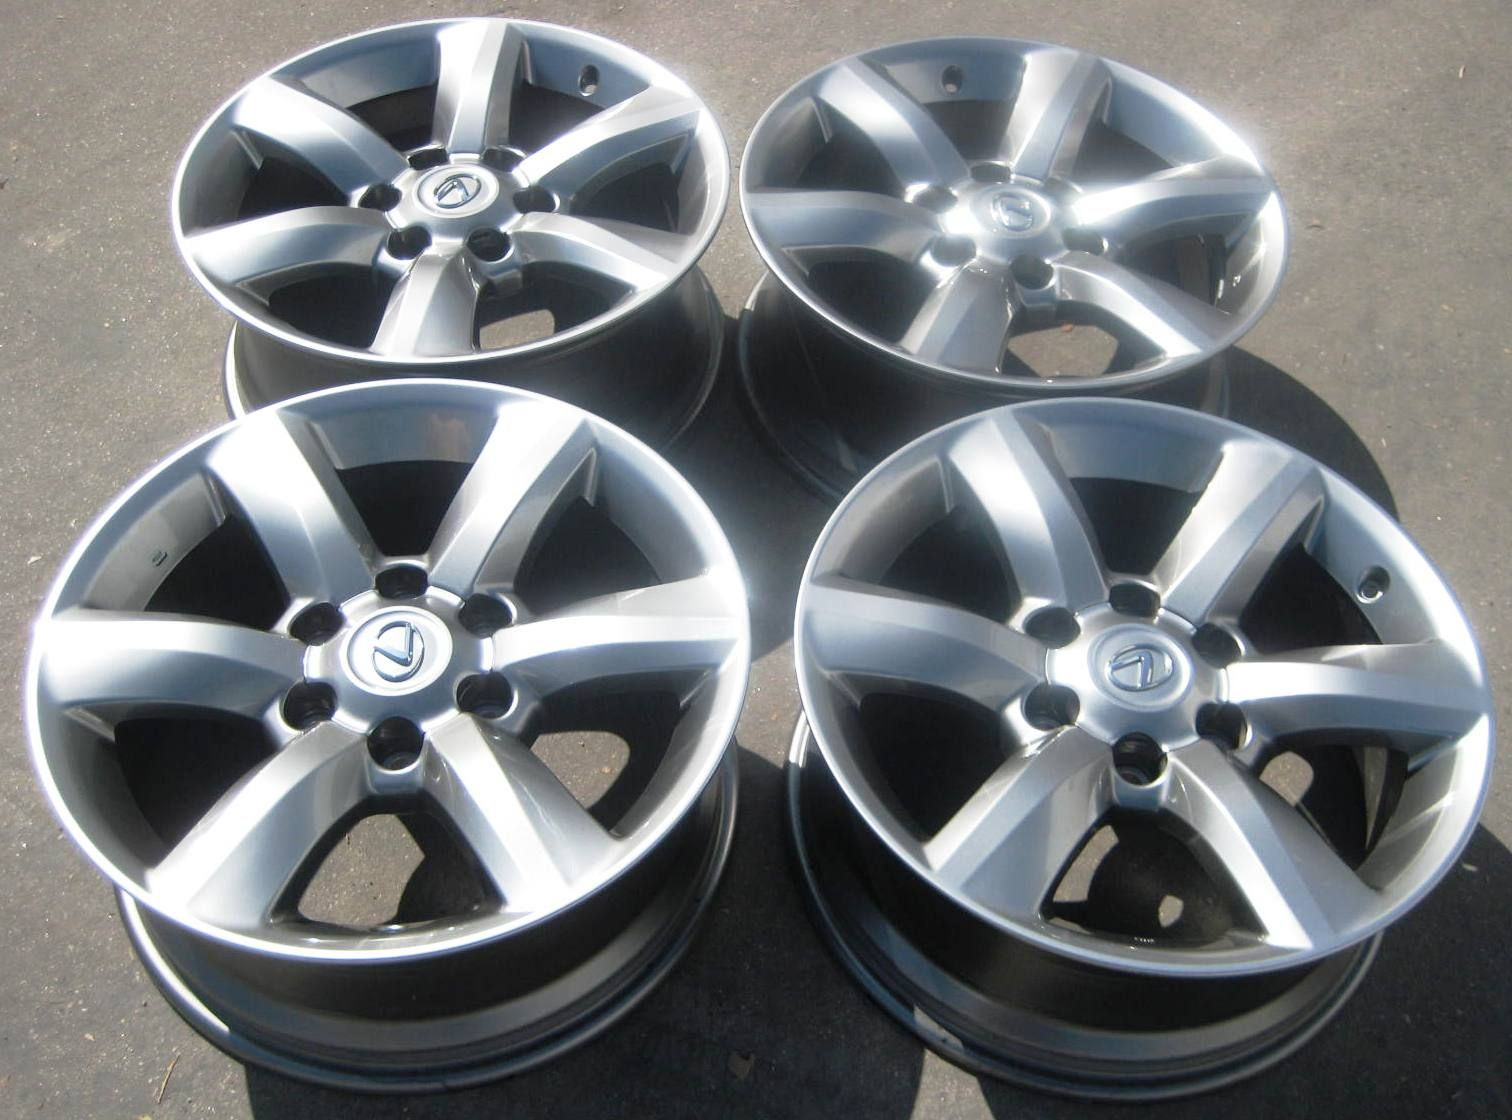 FACTORY LEXUS GX460 GX470 TUNDRA OEM WHEELS RIMS SEQUOIA T100 4RUNNER